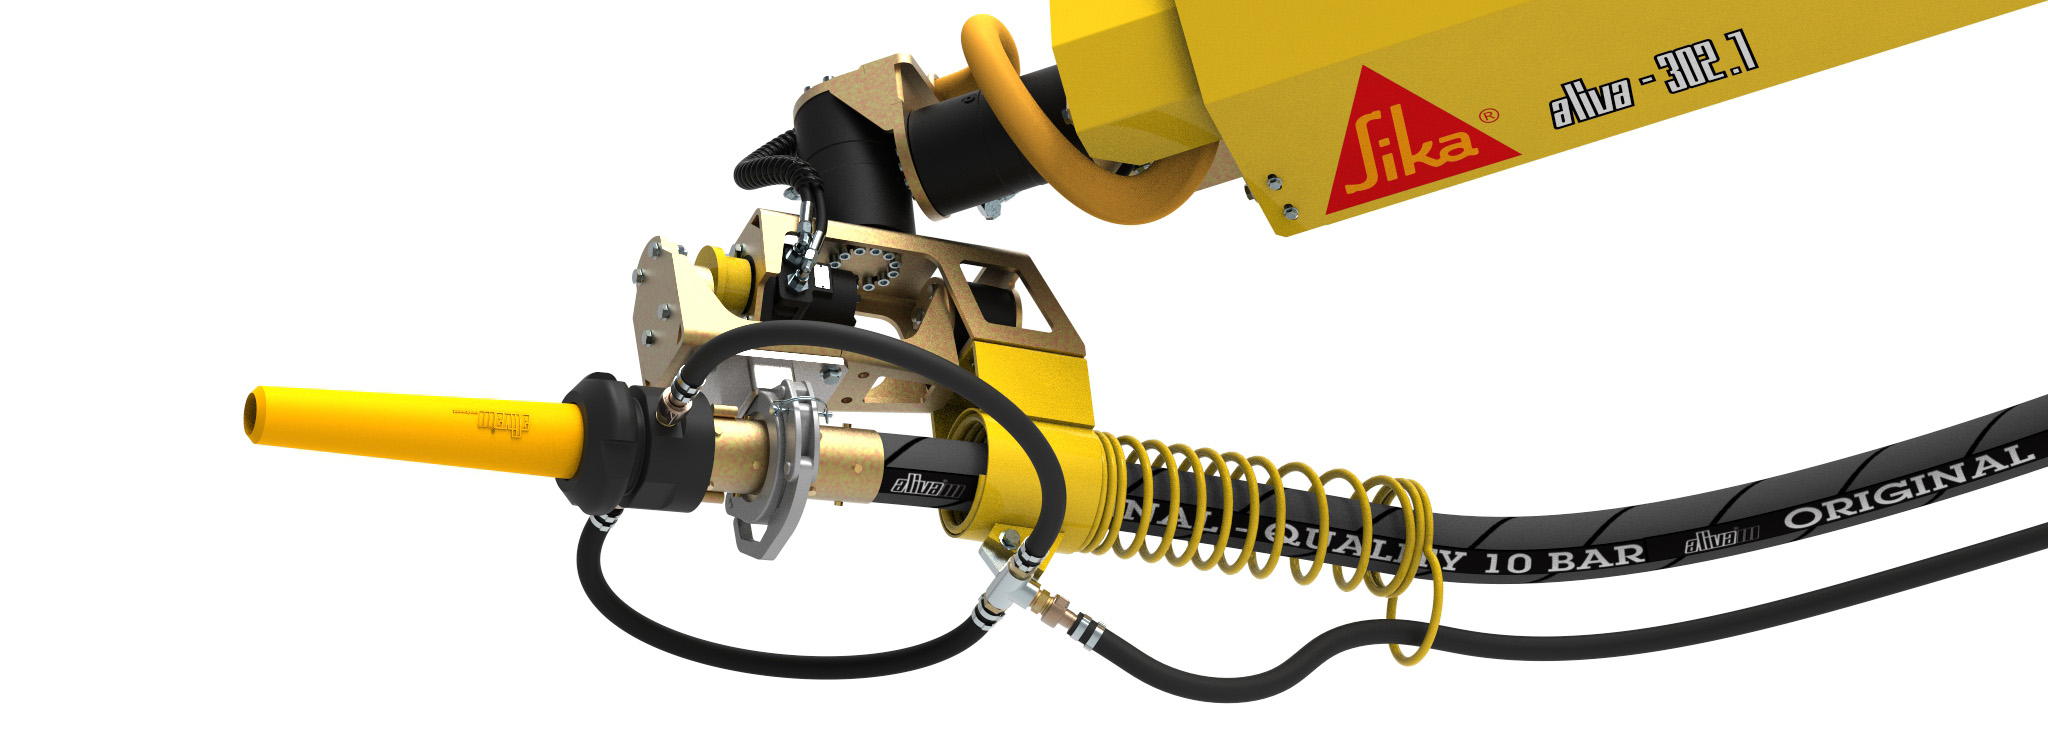 Aliva Converto Robospray thin-stream